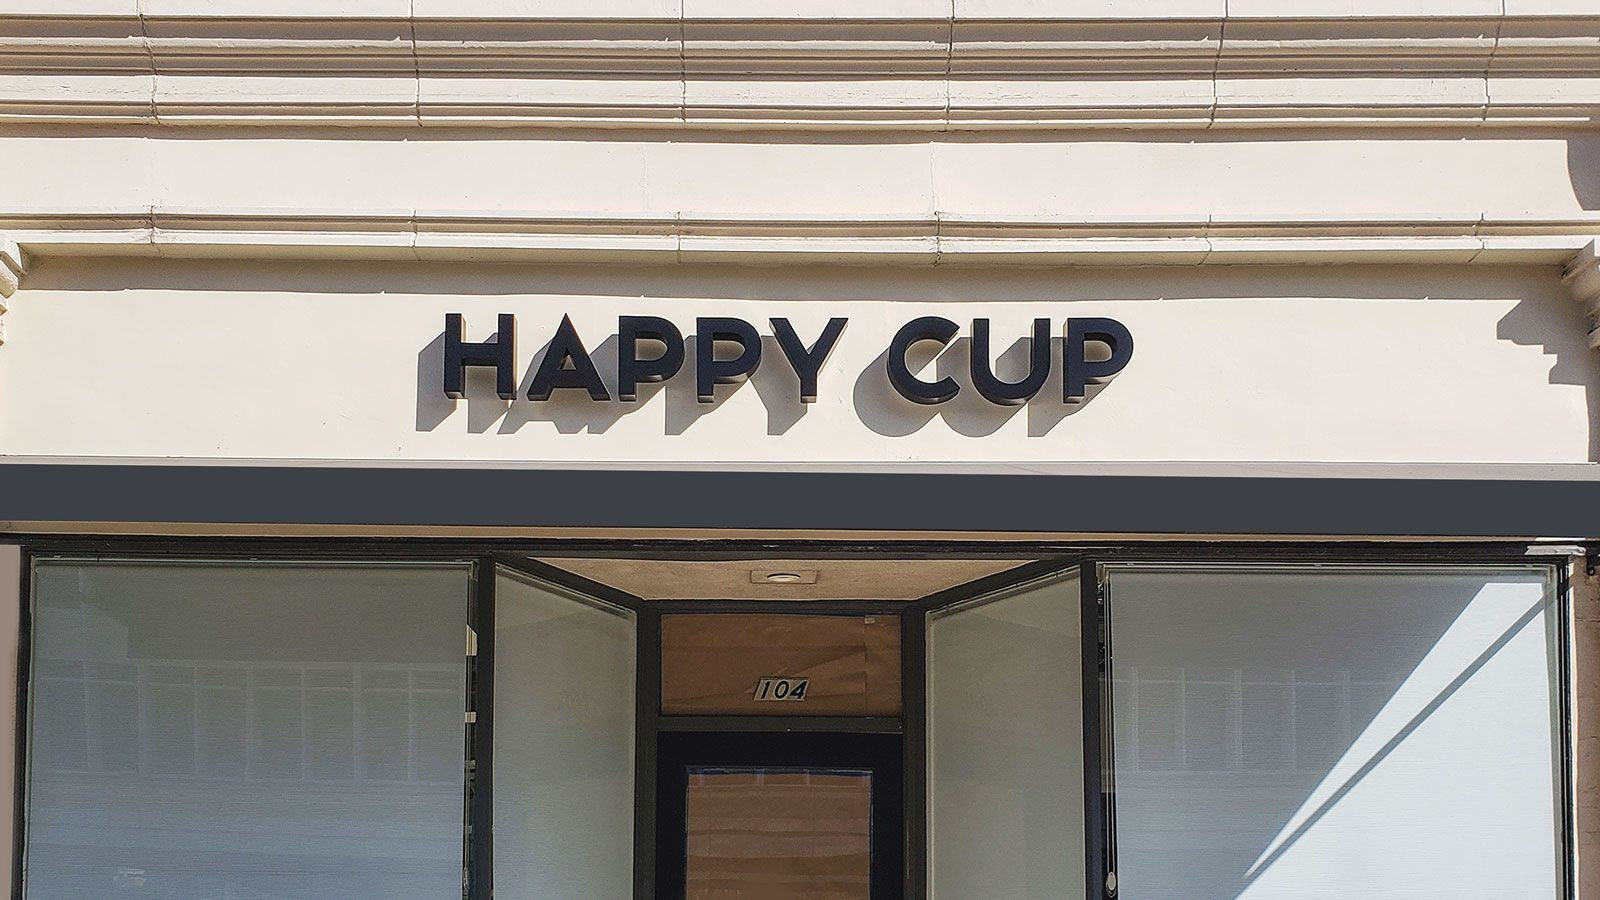 Happy cup 3D letters